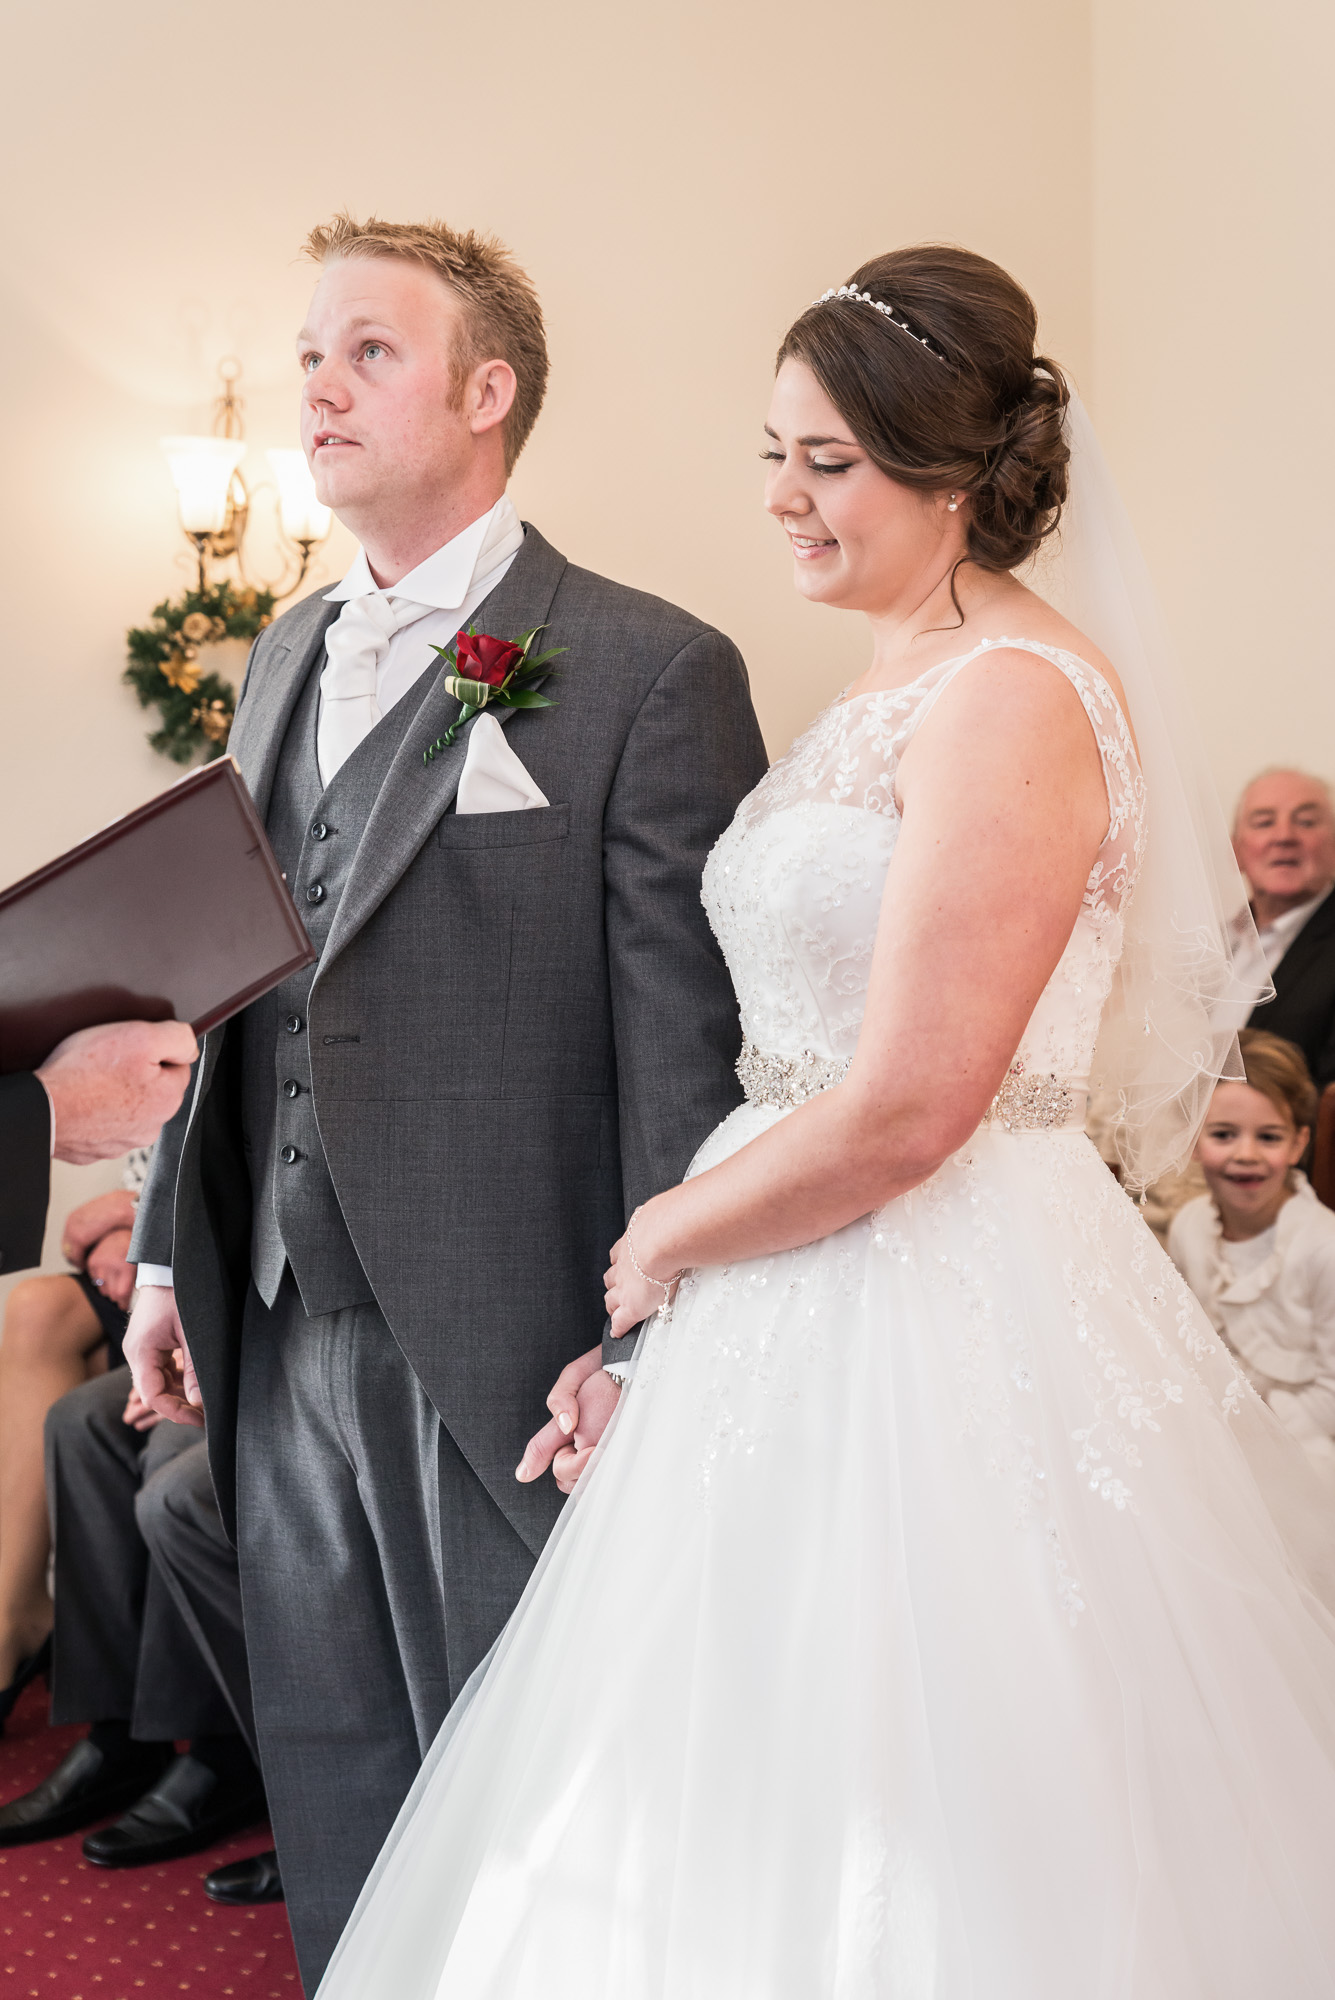 Mold Registry Office Wedding Photo